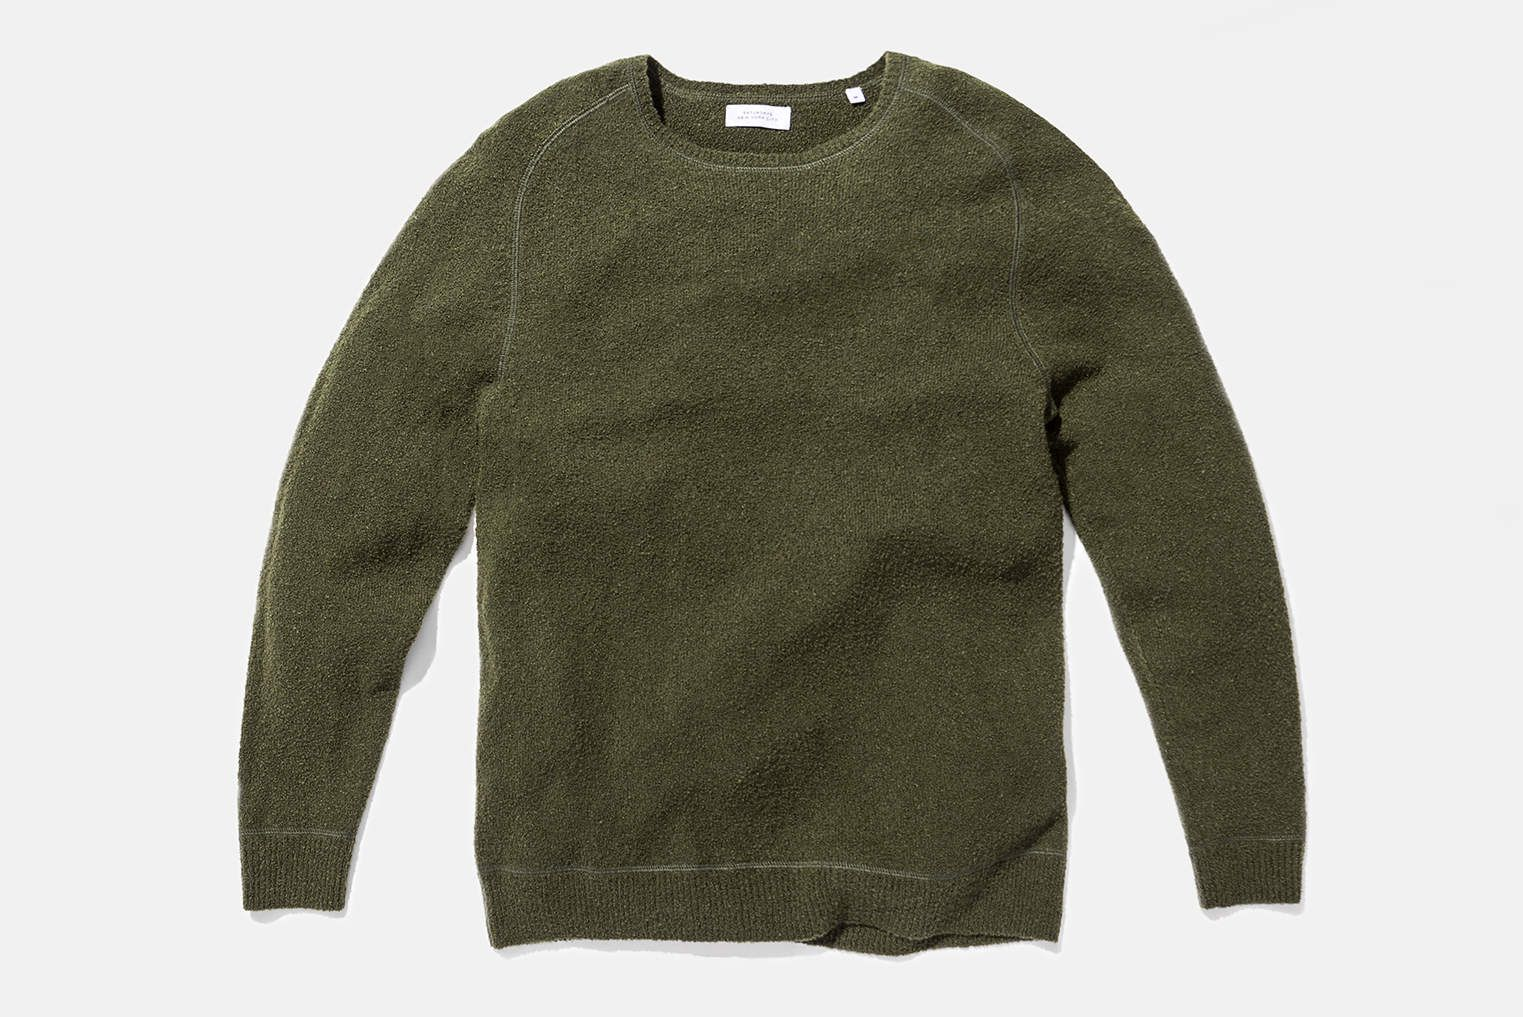 Kasu Knit Shirt, Jade